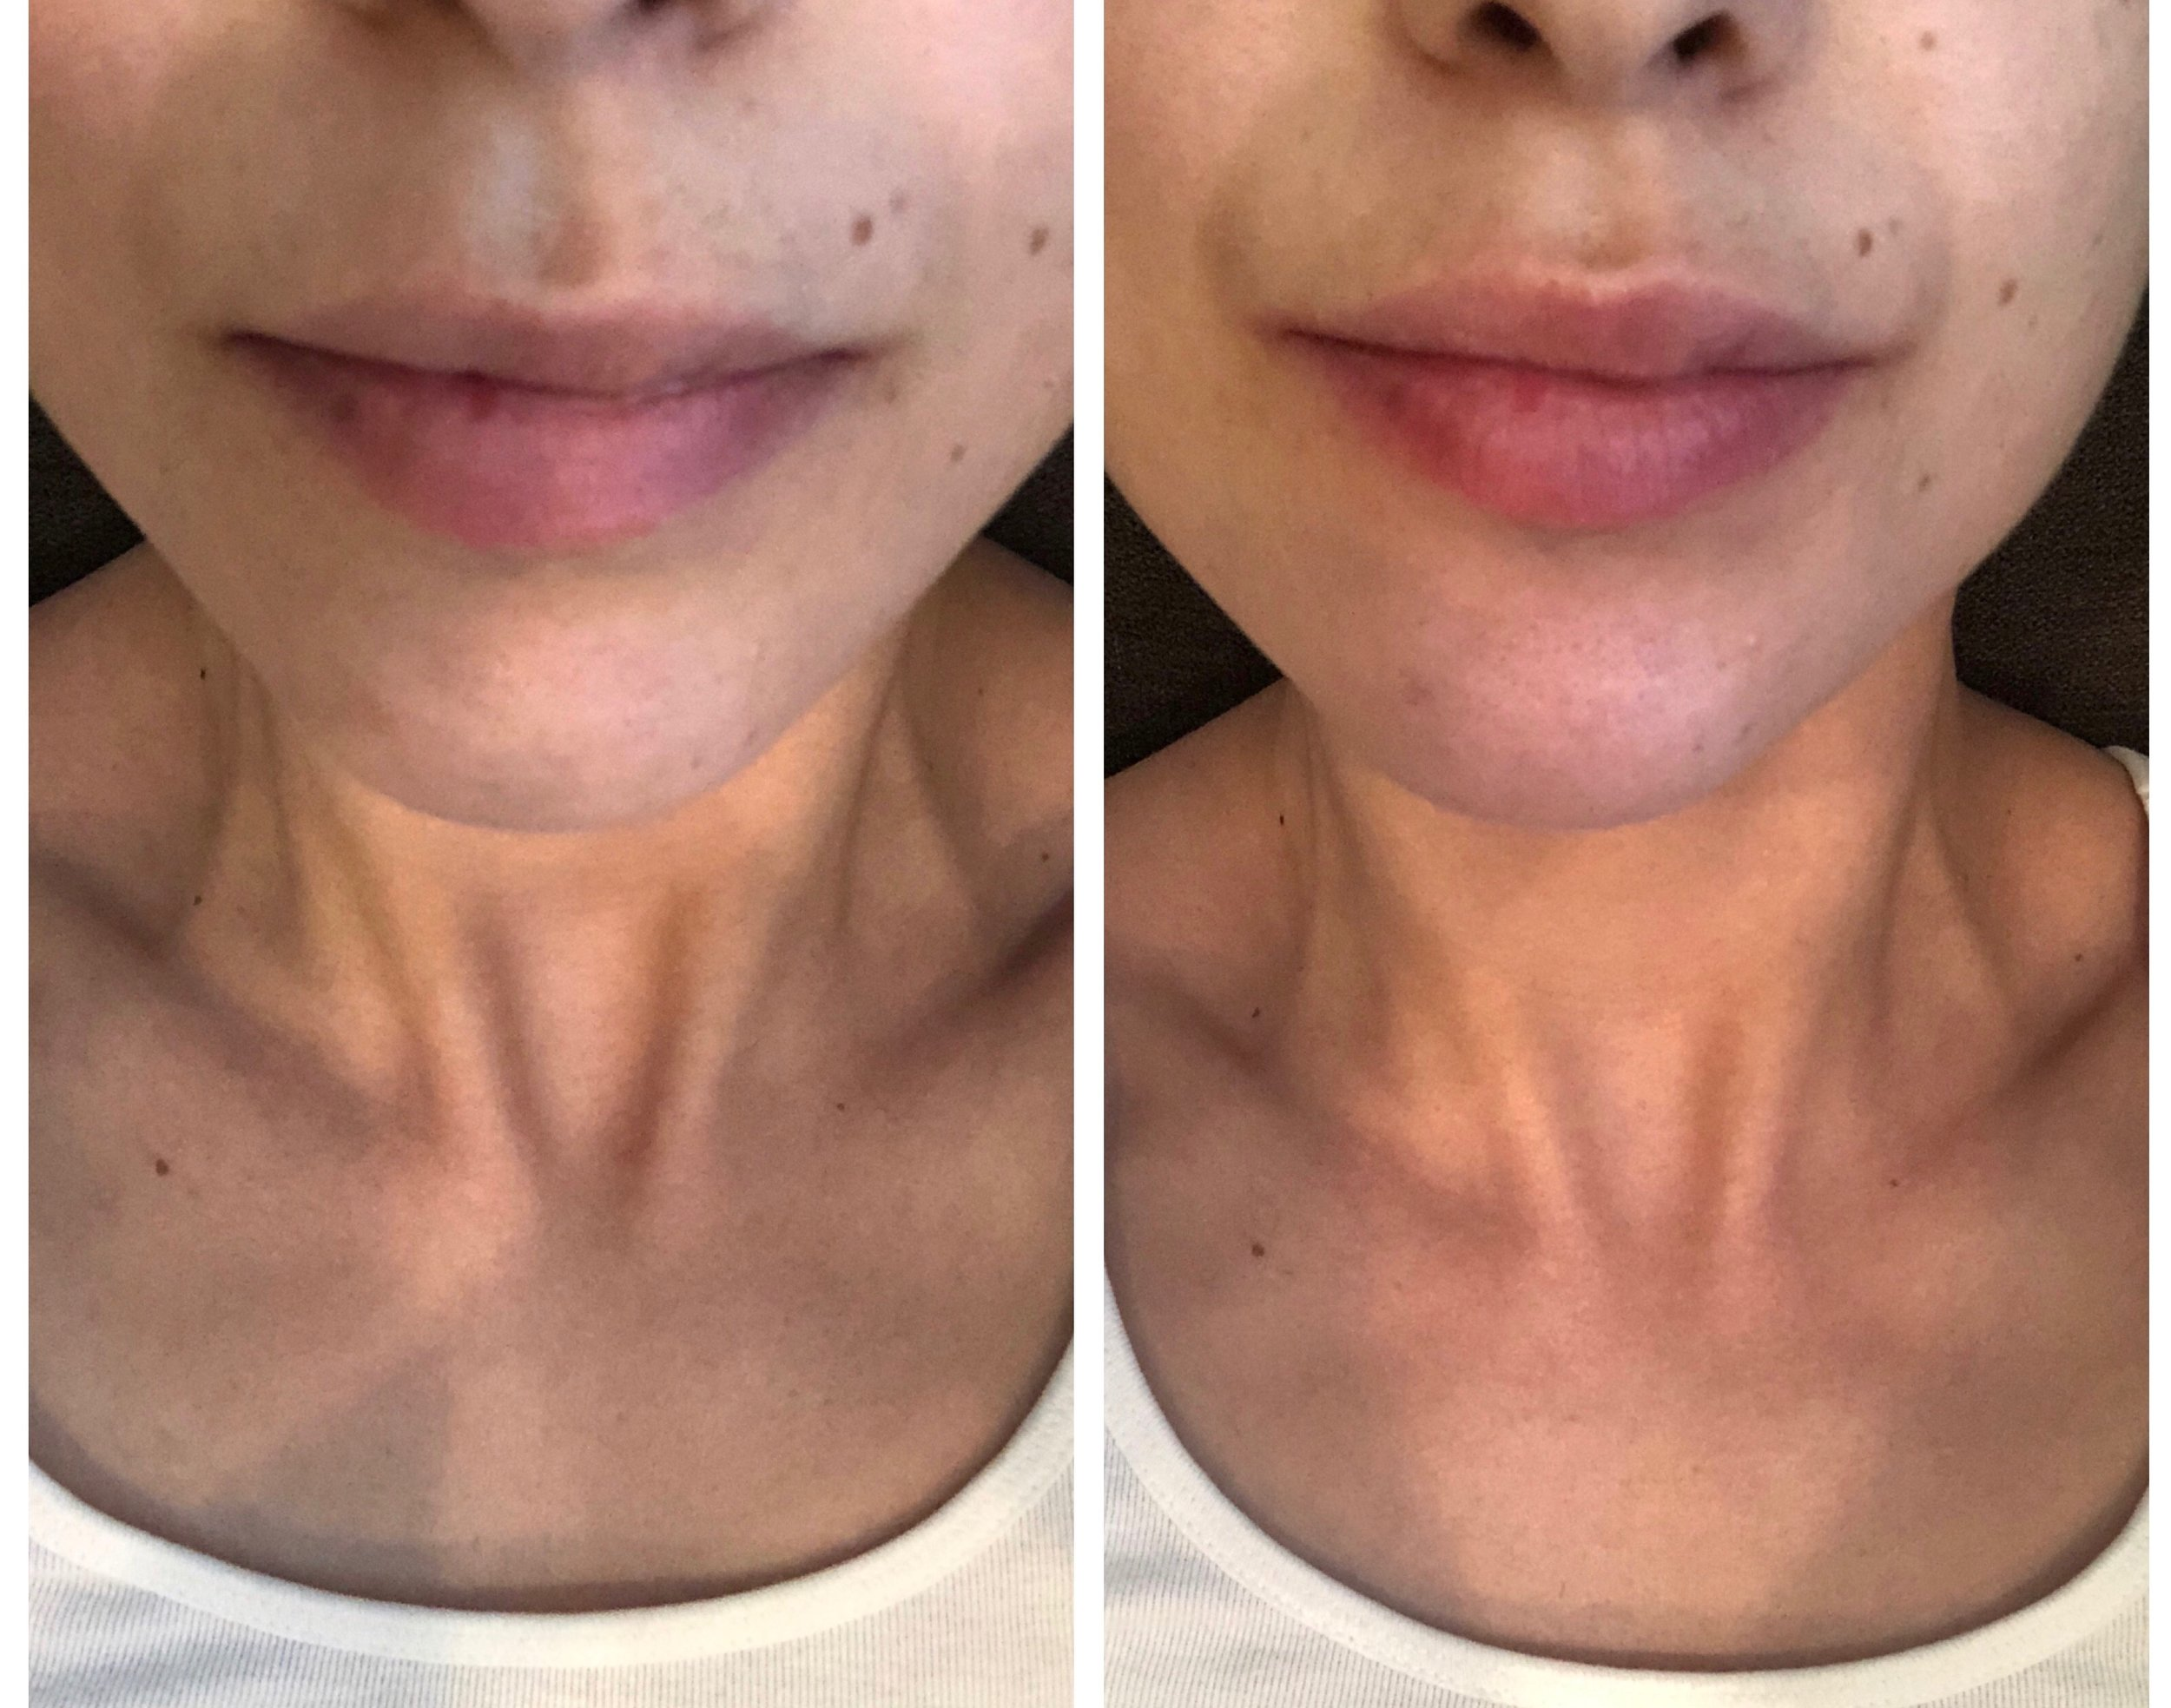 On the left is before treatment and on the right is after brushing lips with solution for 1.5 minutes.